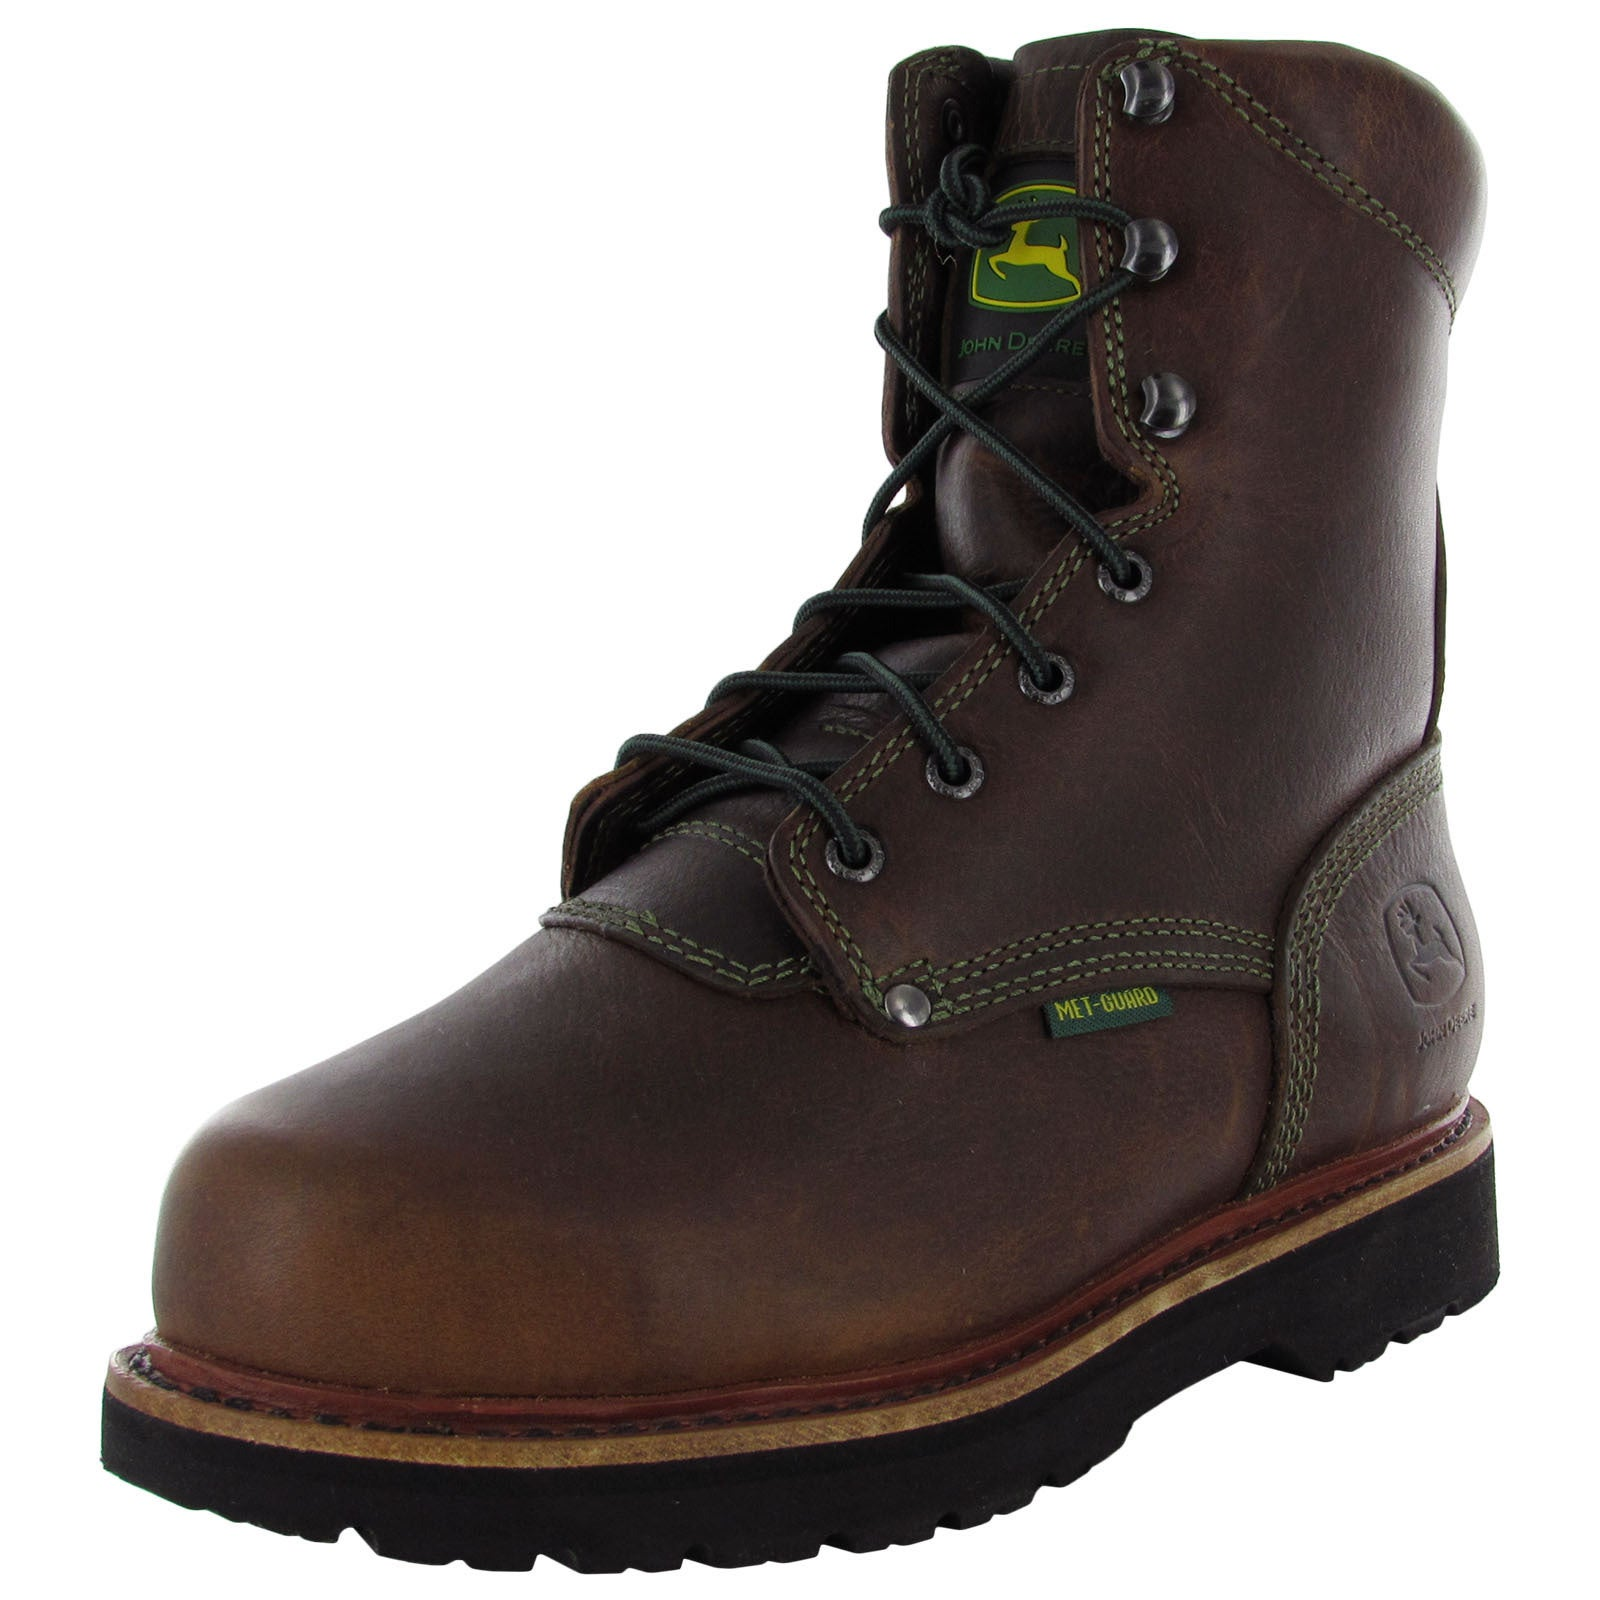 4ae0118cdf1 John Deere Womens JD3362 Steel Toe Lace Up Safety Boots